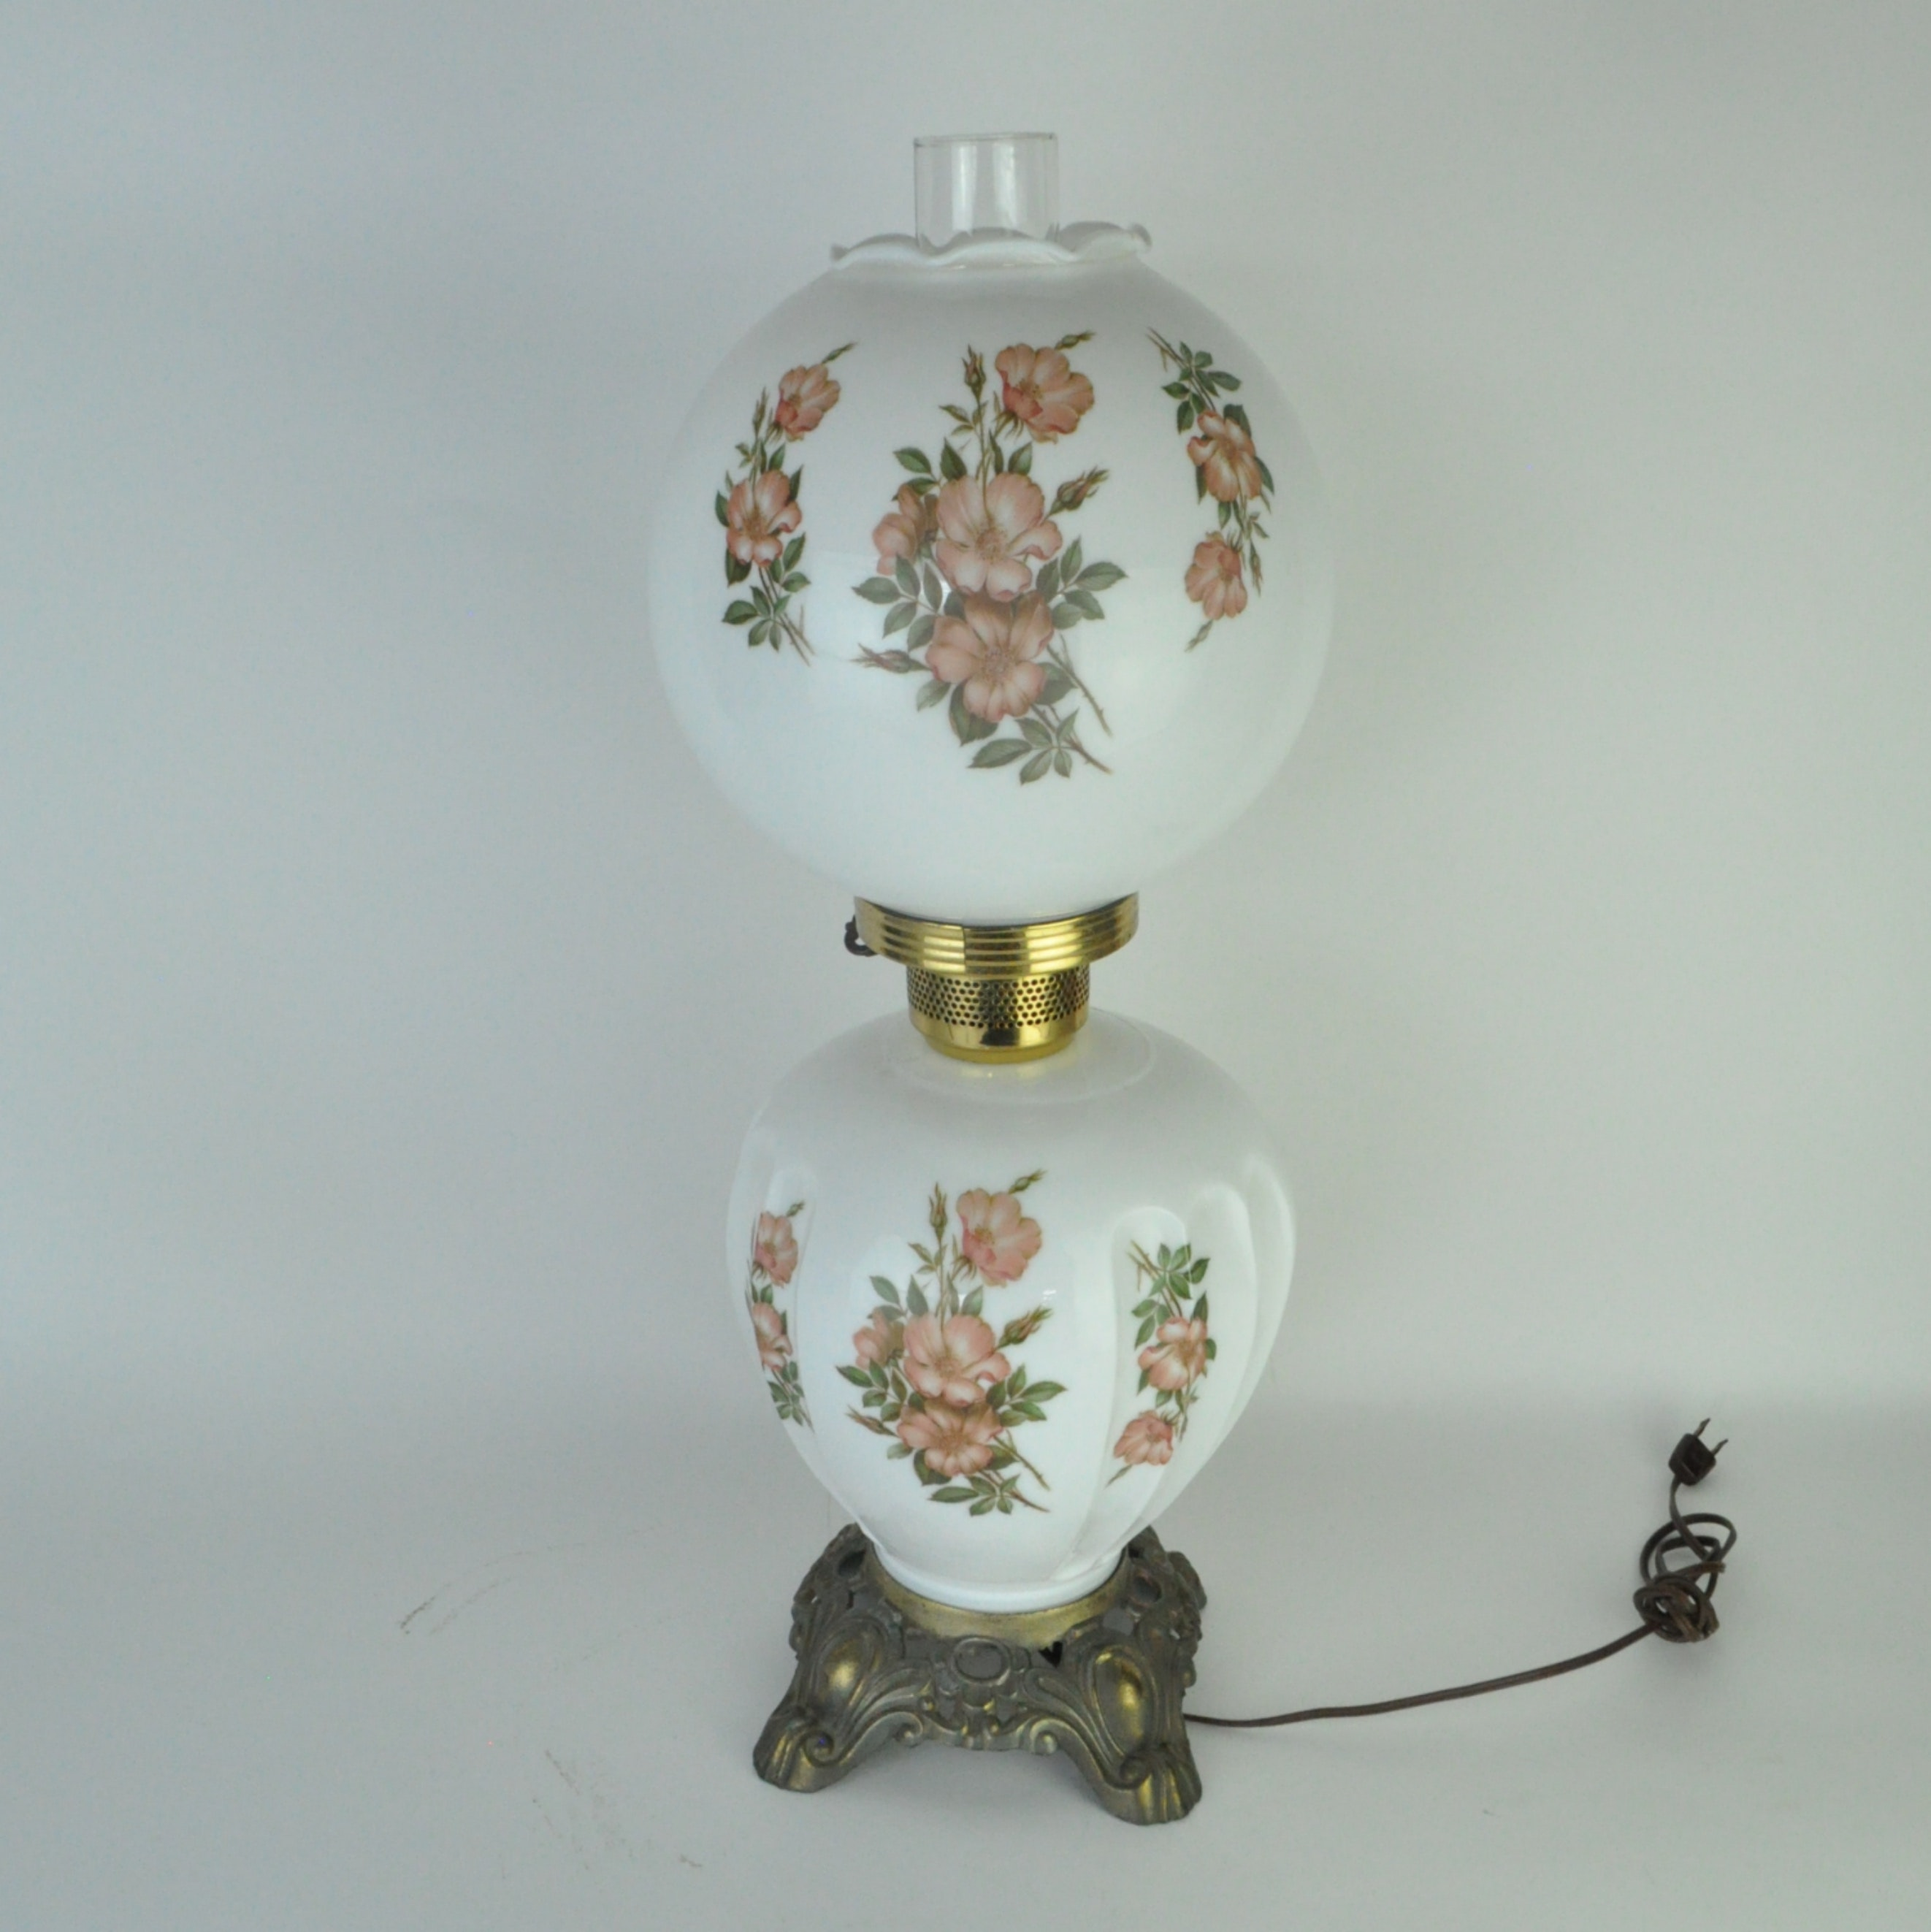 Converted Oil Globe Lamp with Floral Design